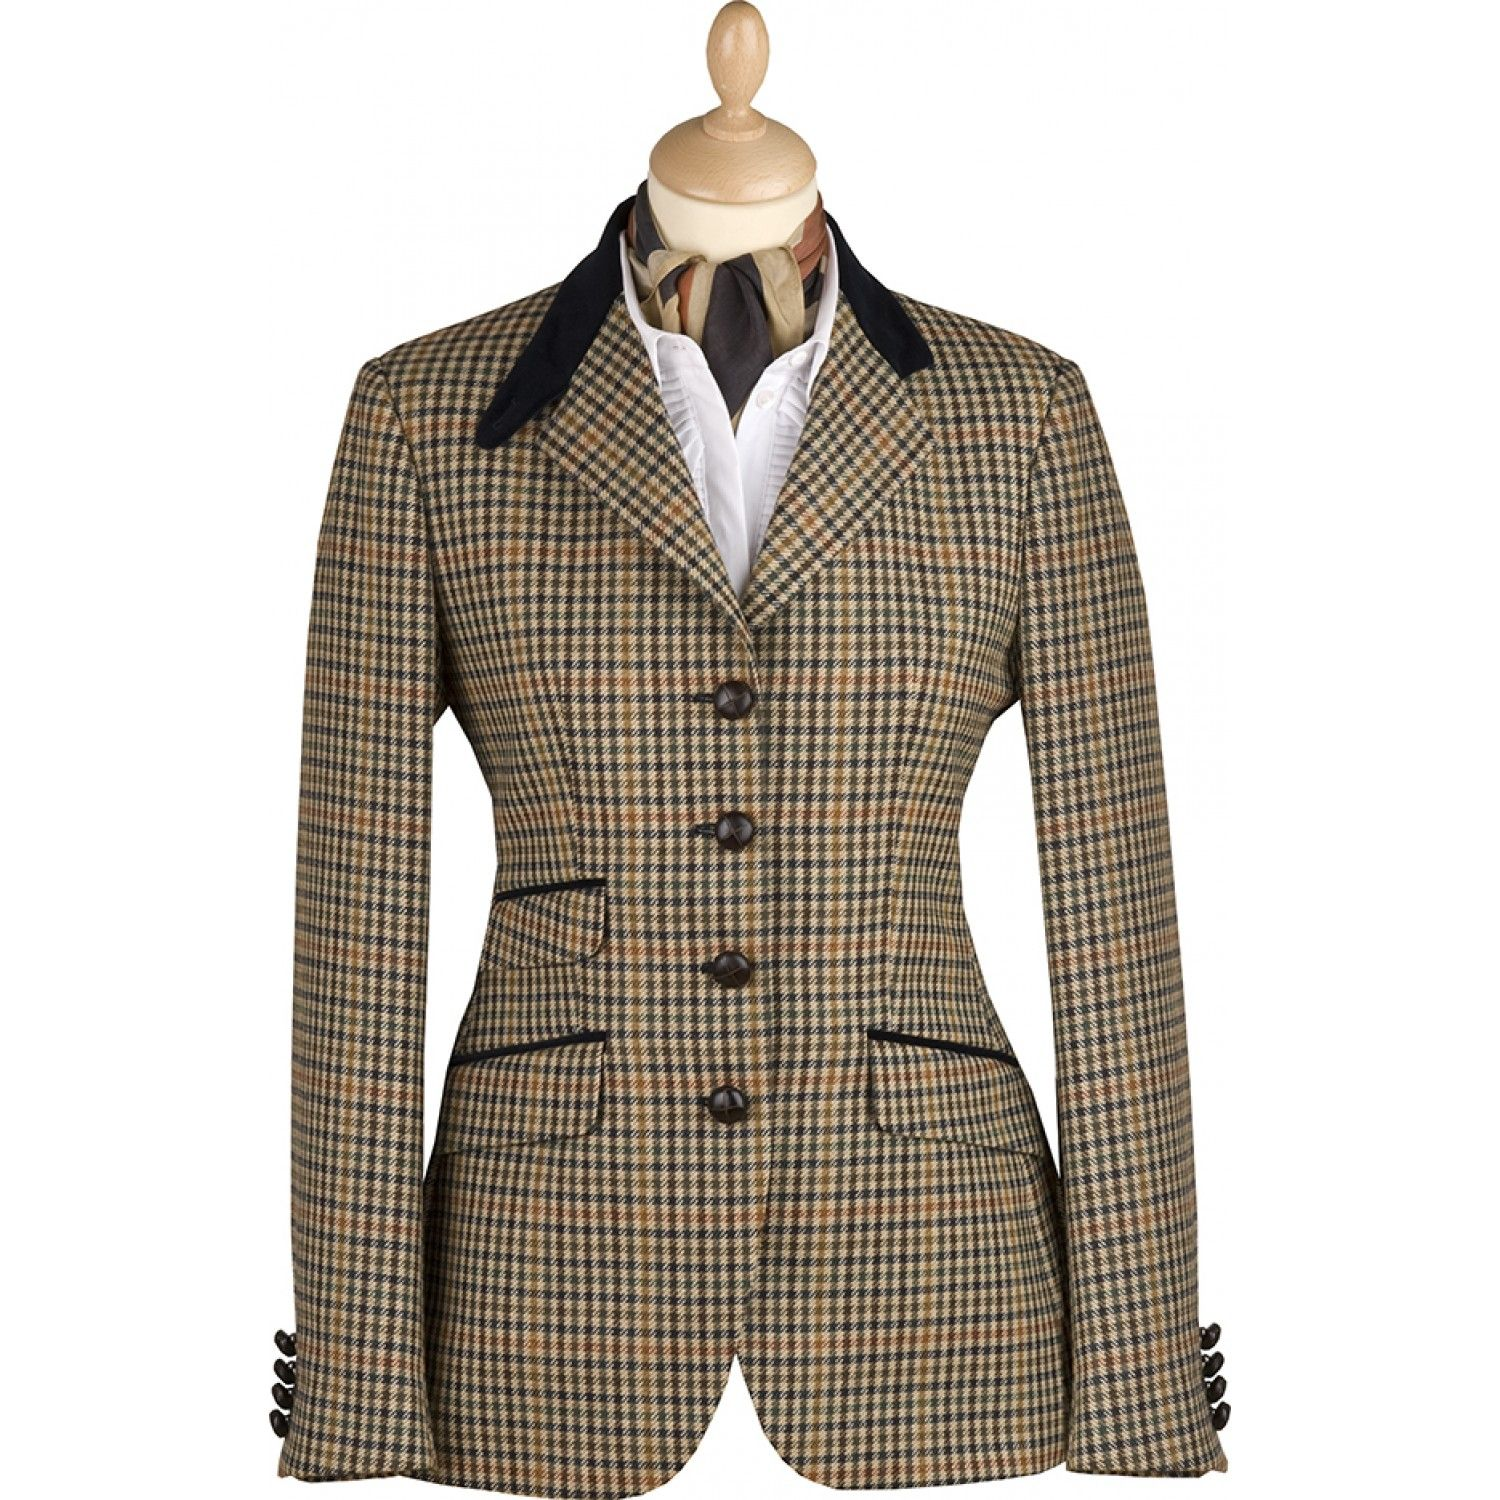 ladies tweed jacket - Google Search | Shopping | Pinterest | Tweed ...